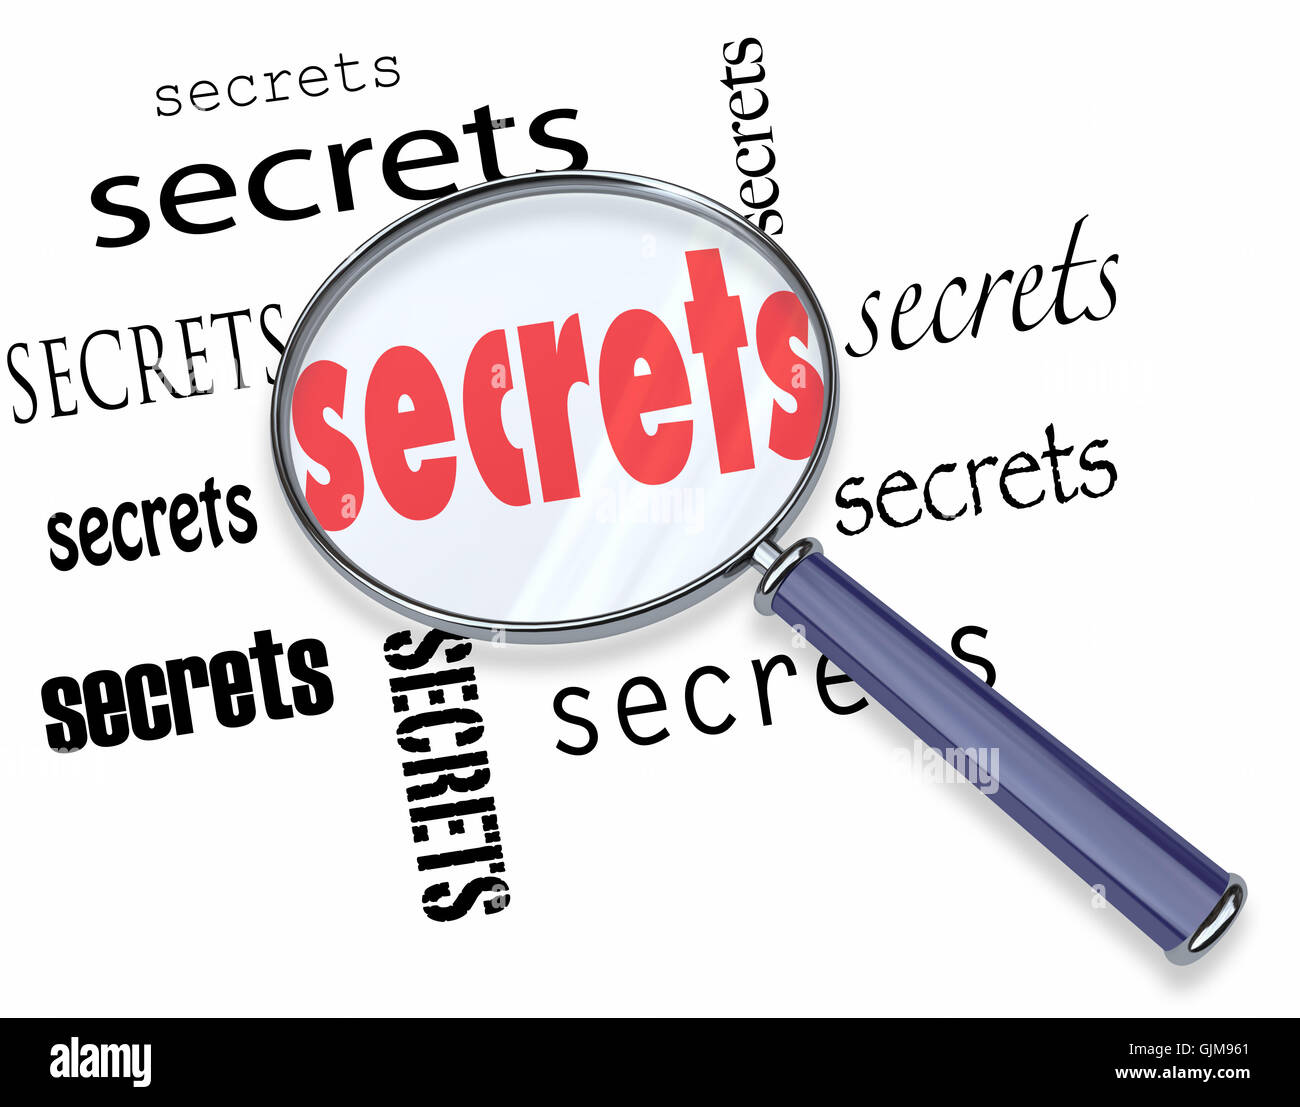 Searching for Secrets - Magnifying Glass Finds Clues - Stock Image